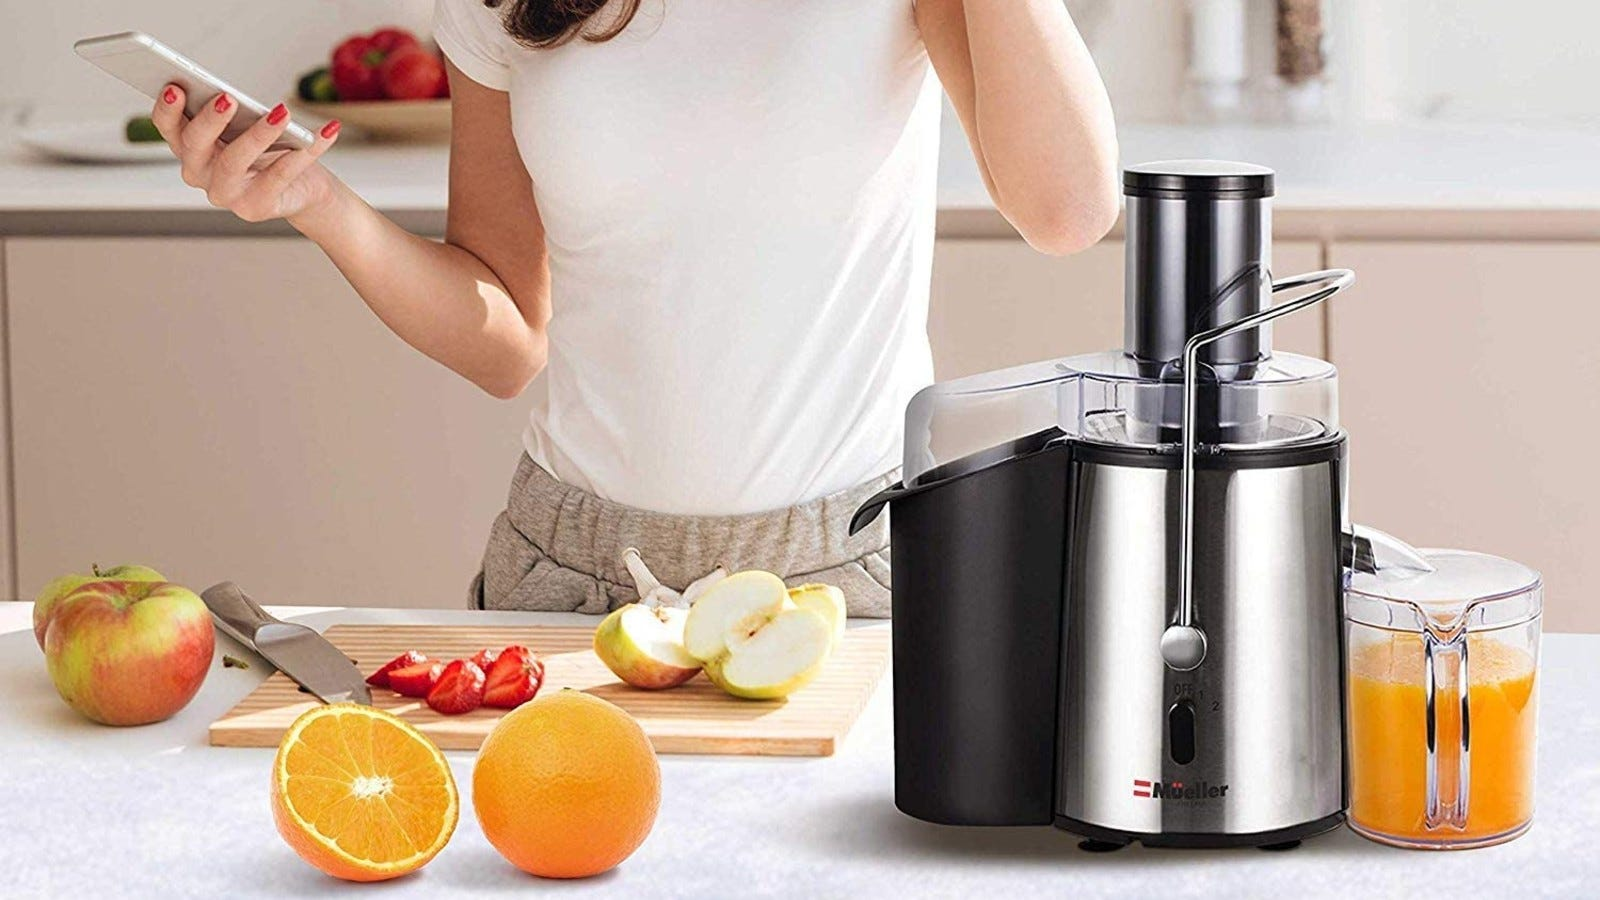 juicer on counter with oranges